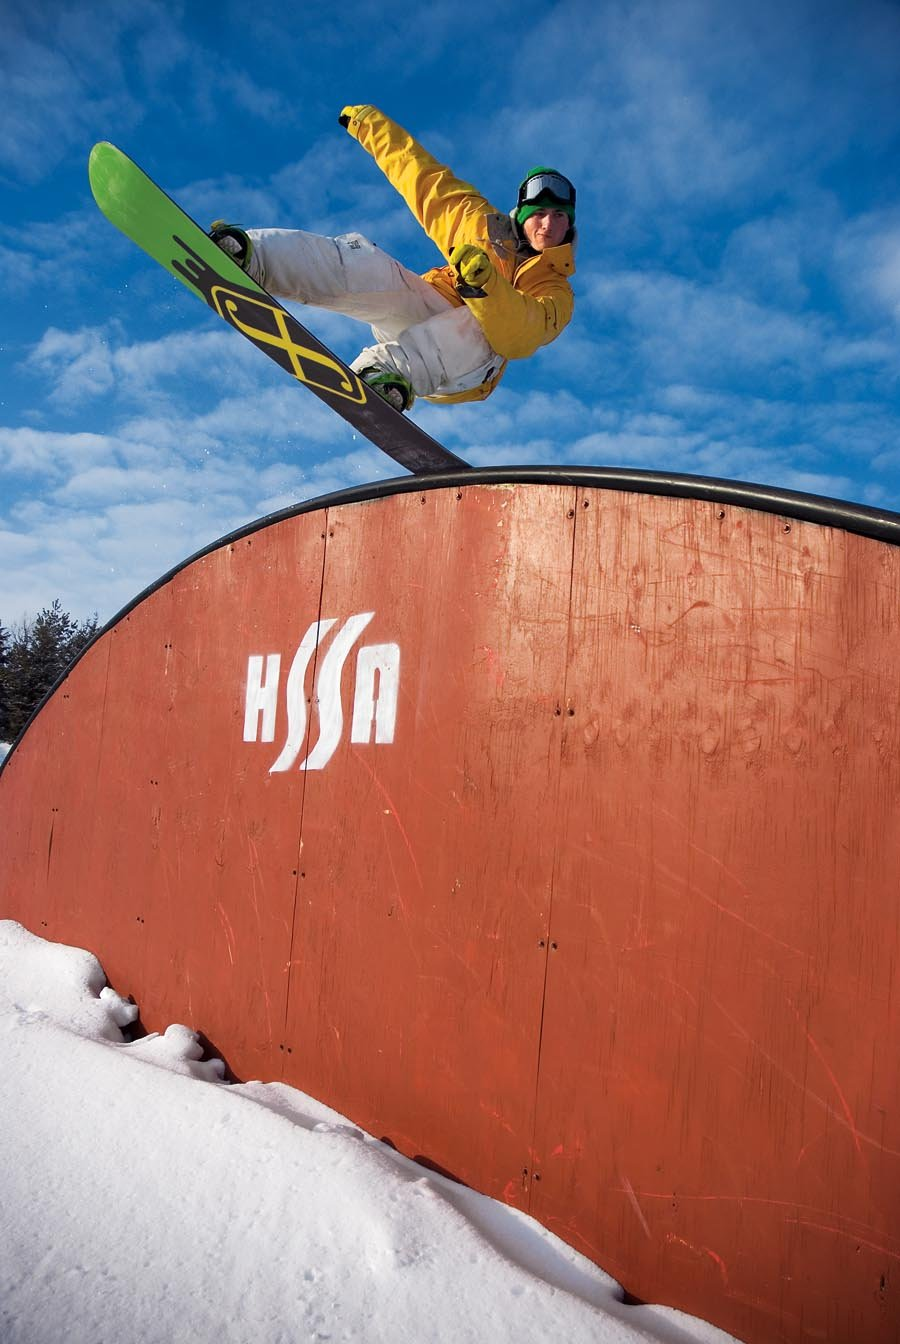 A snowboarder does a trick in the terrain park at Hyland Ski & Snowboard Area, Minnesota